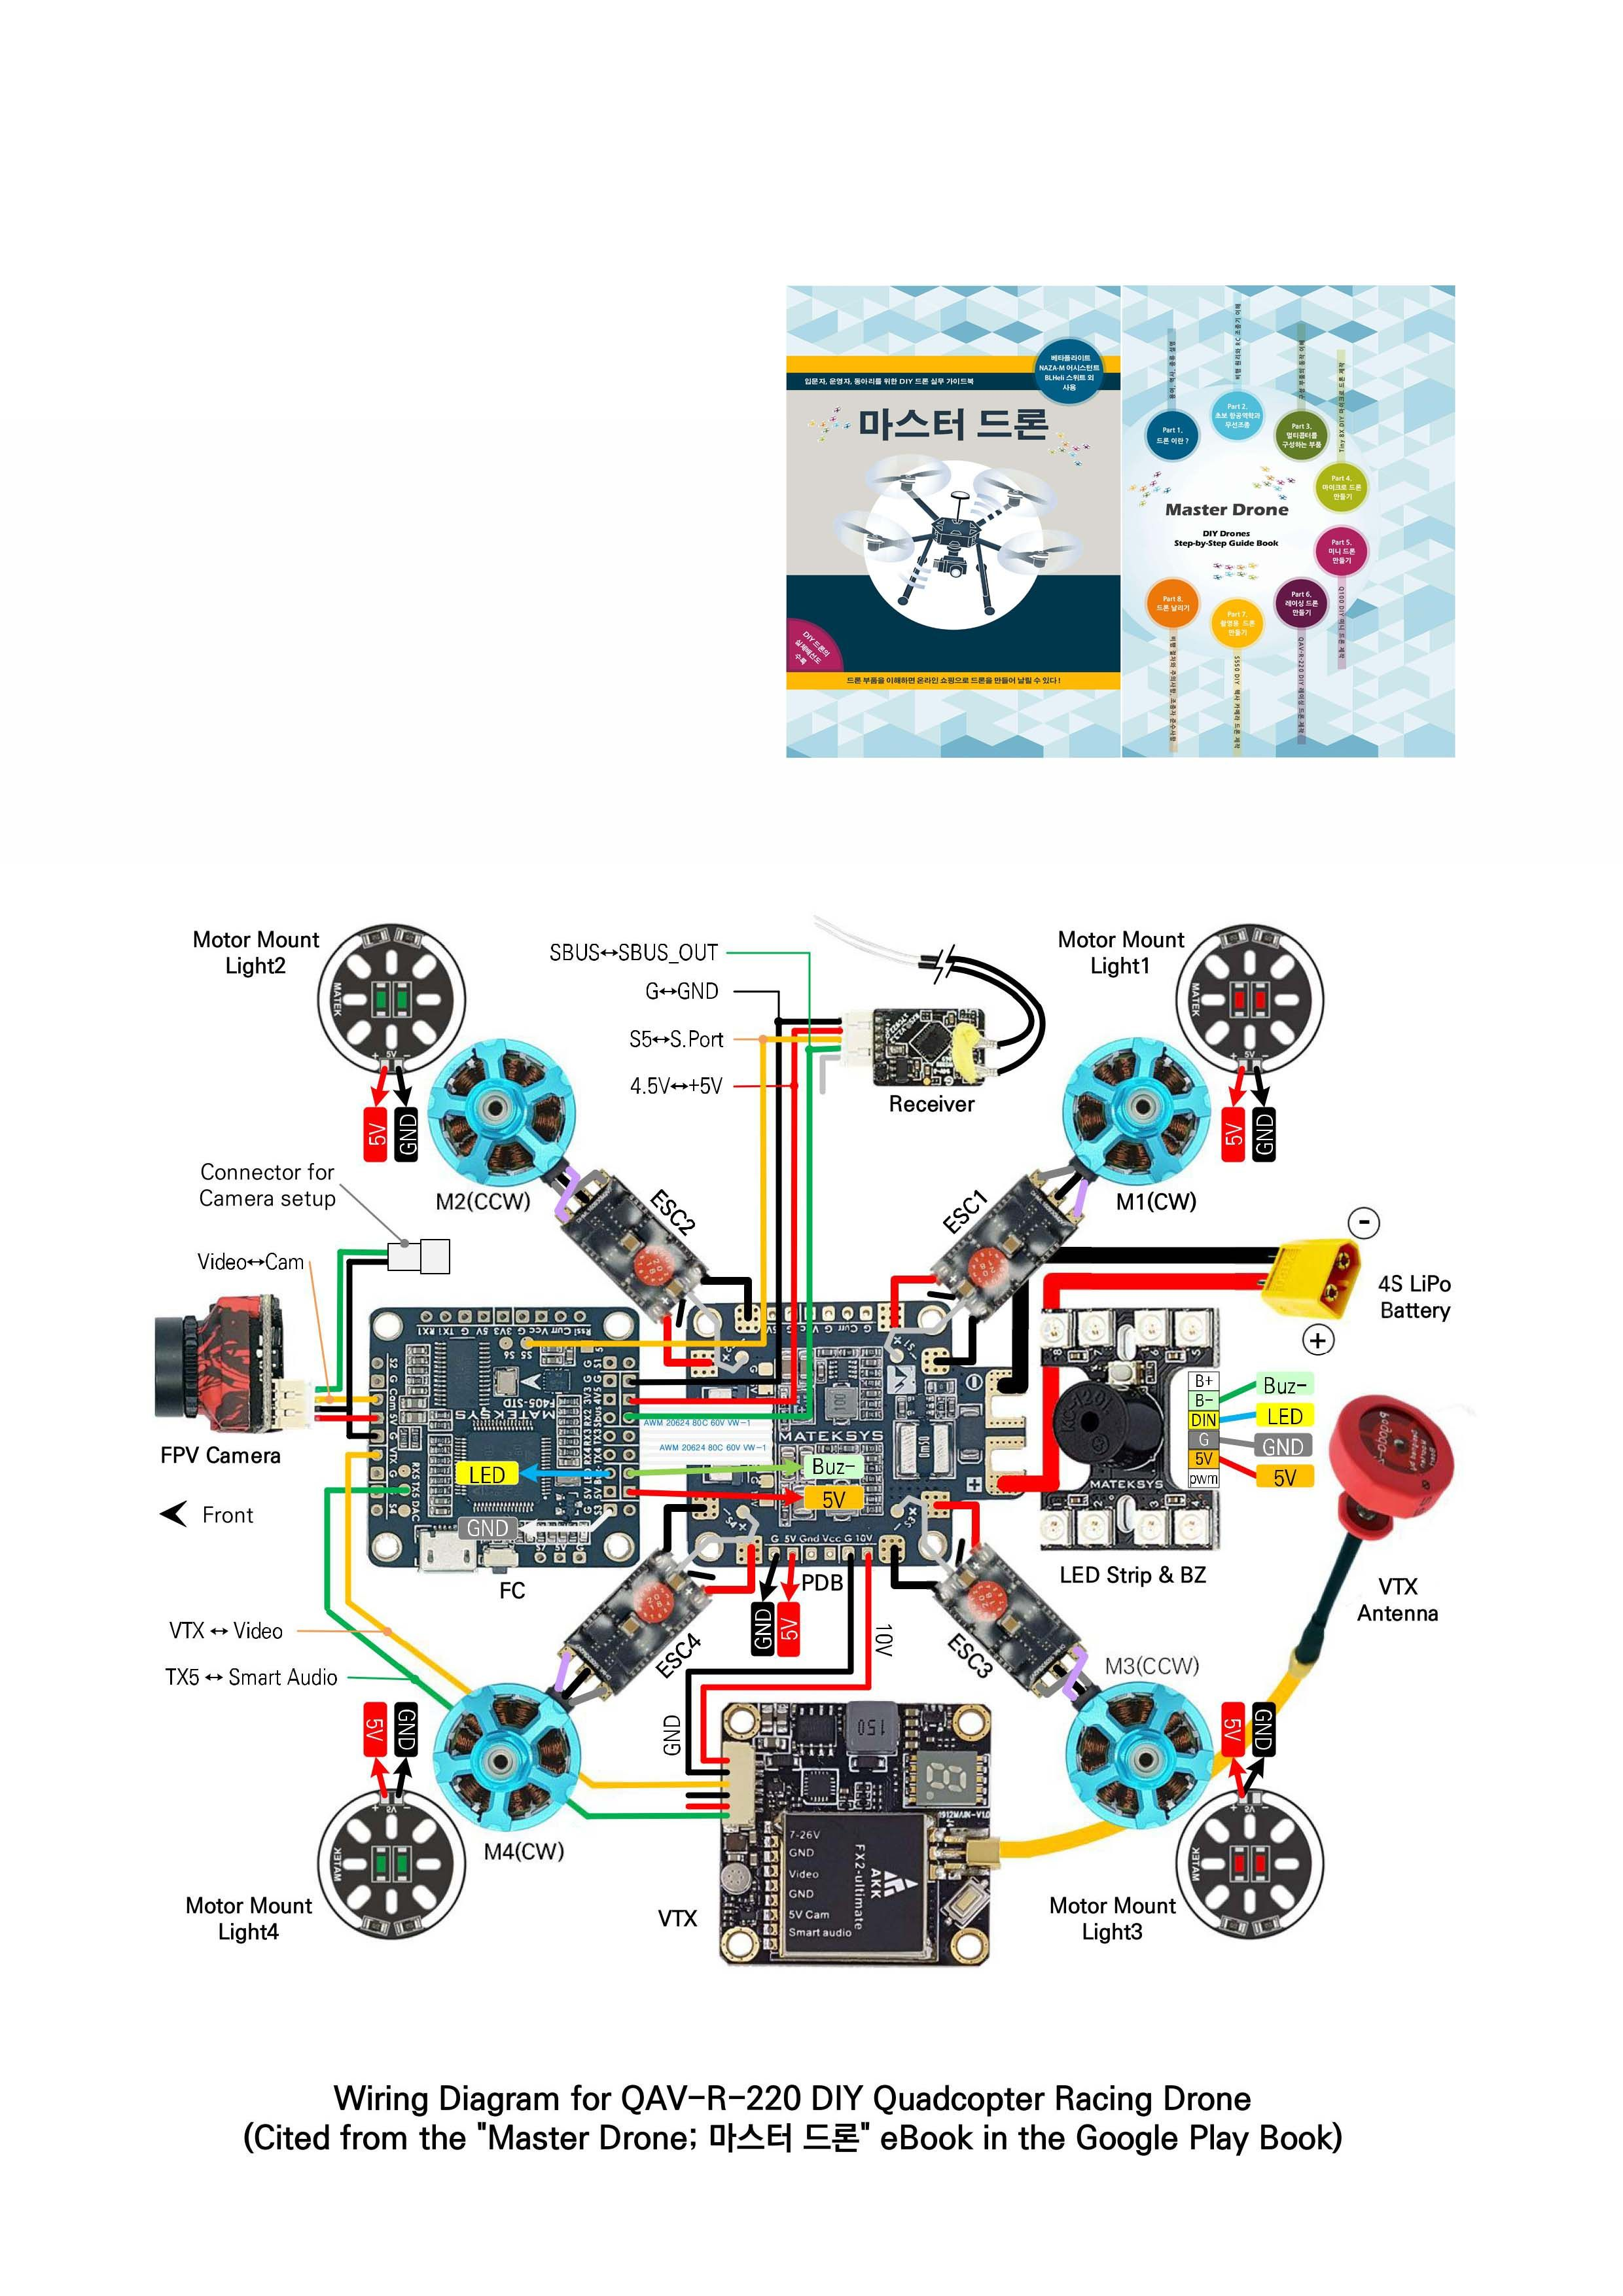 Connection Diagram For The Qav R 220 Diy Drone 드론 대학원